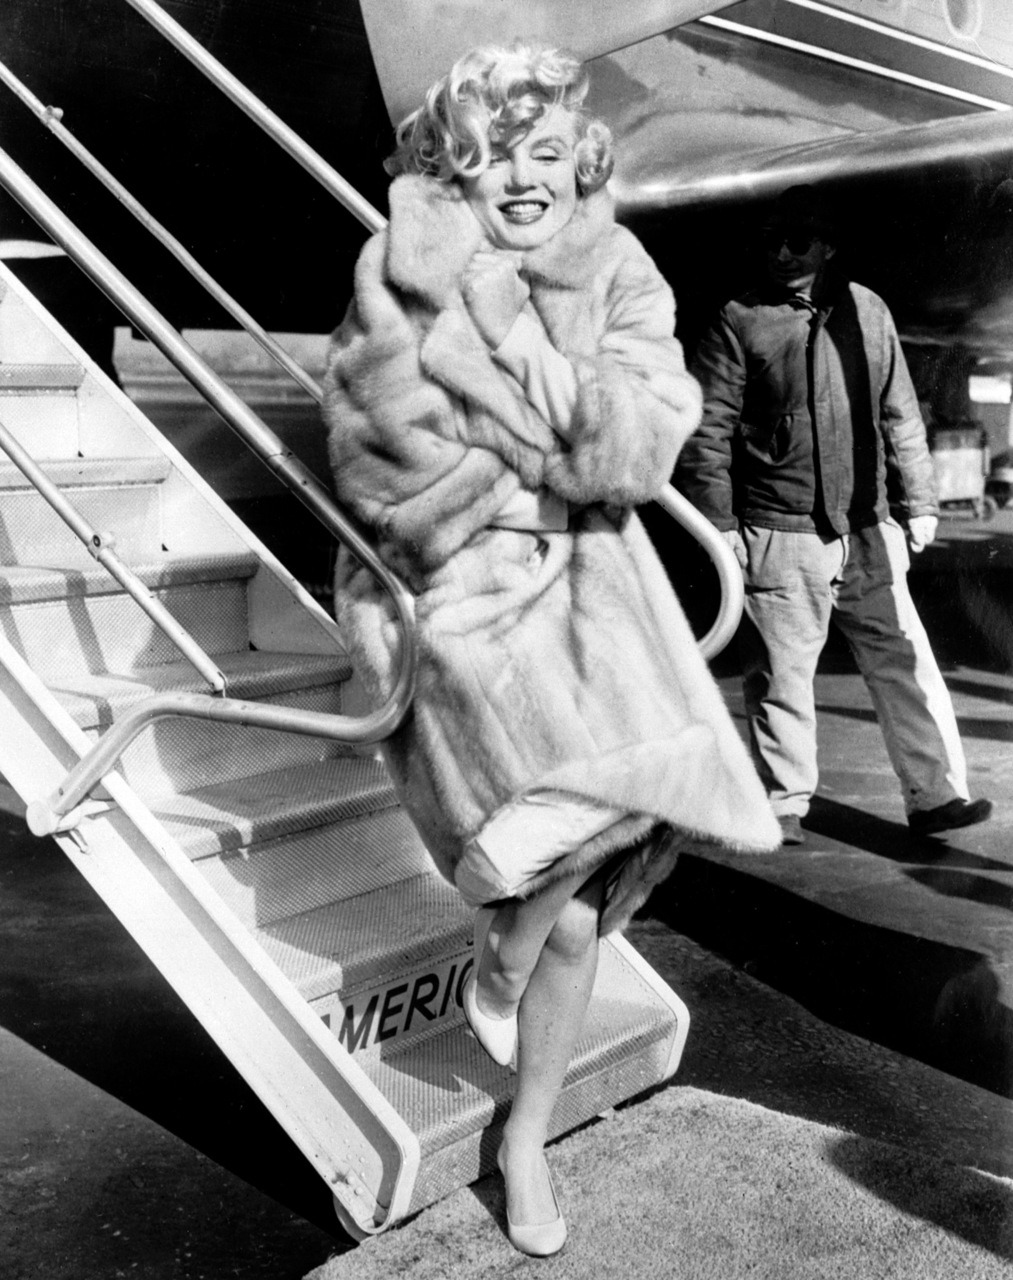 marilynfacts:   Marilyn posing at La Guarda Airport, 1959.